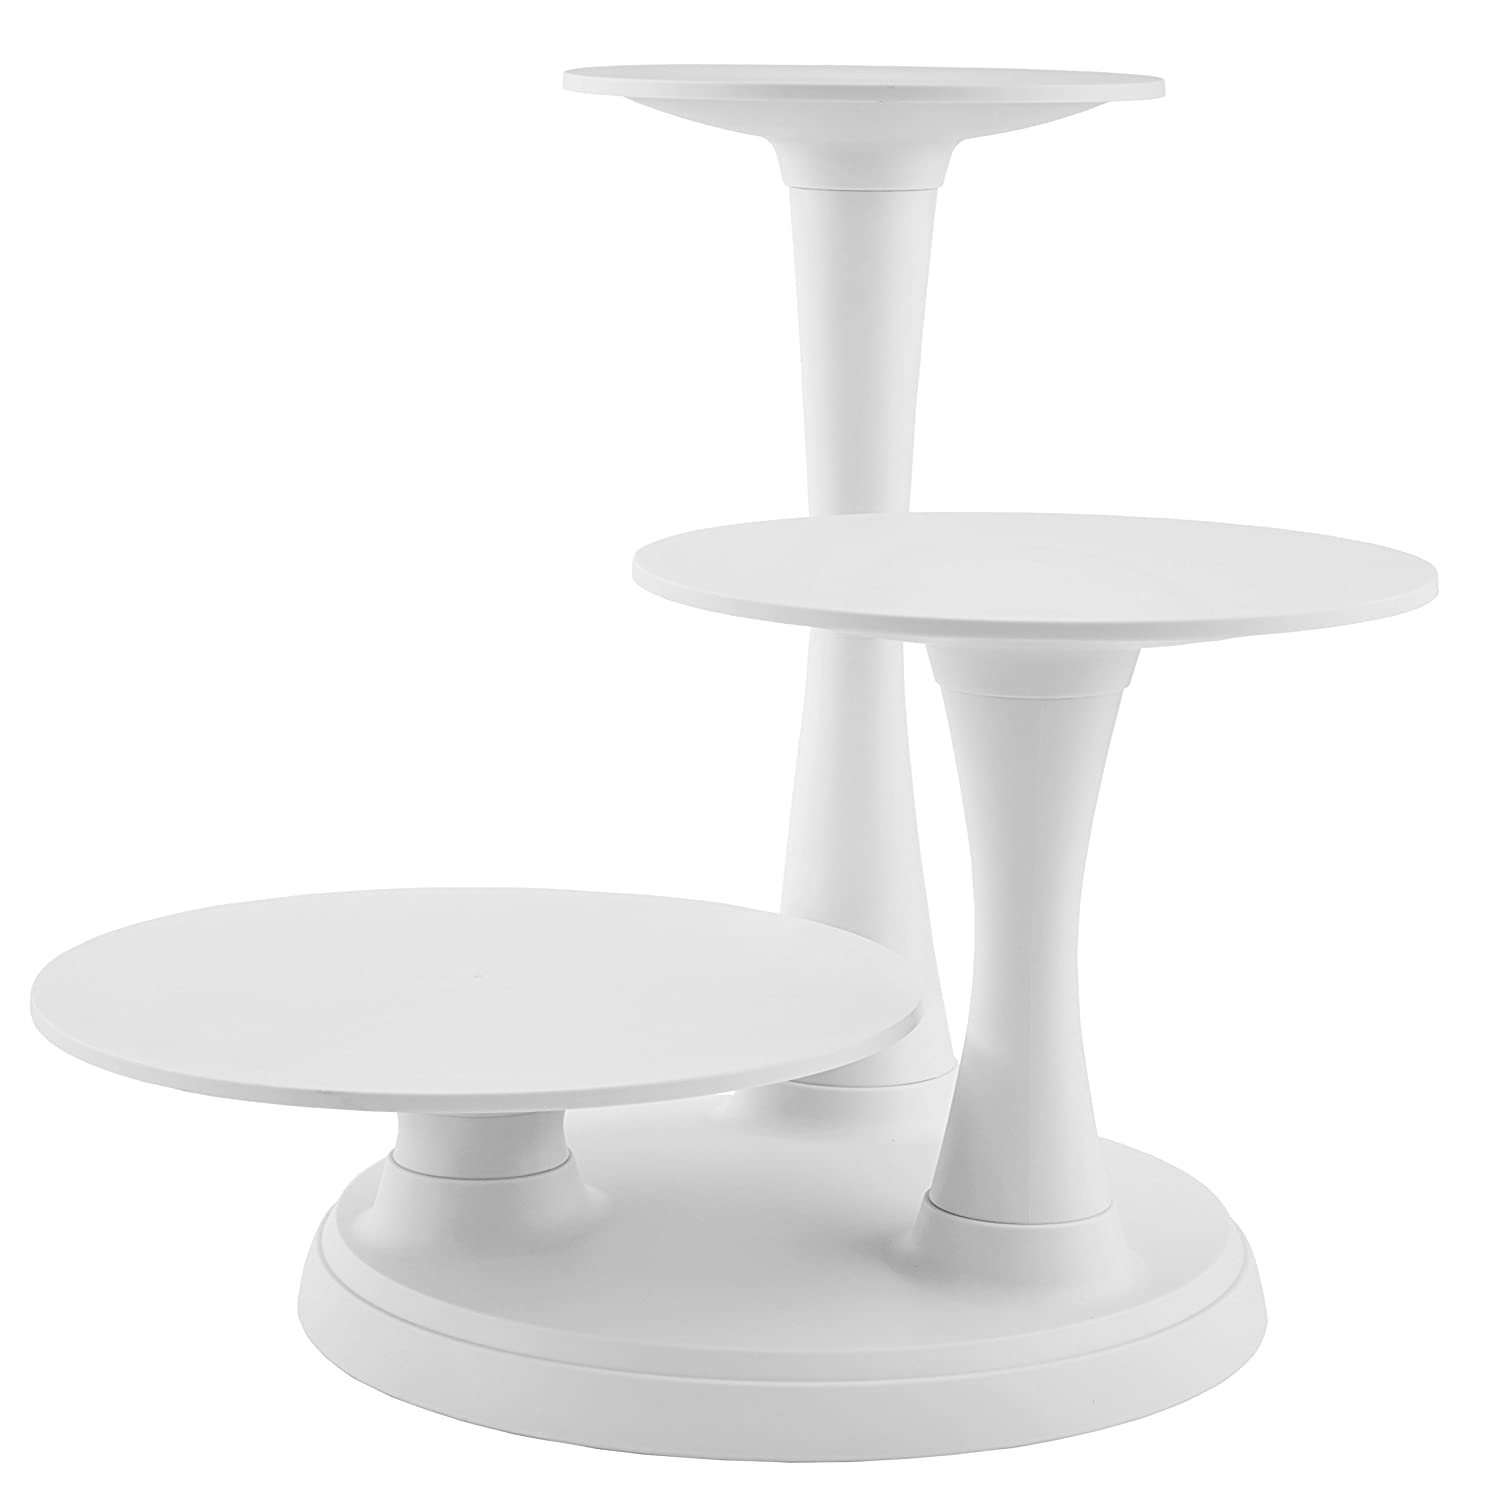 3-Tier Pillar Cake Stand Notions Marketing 307-350